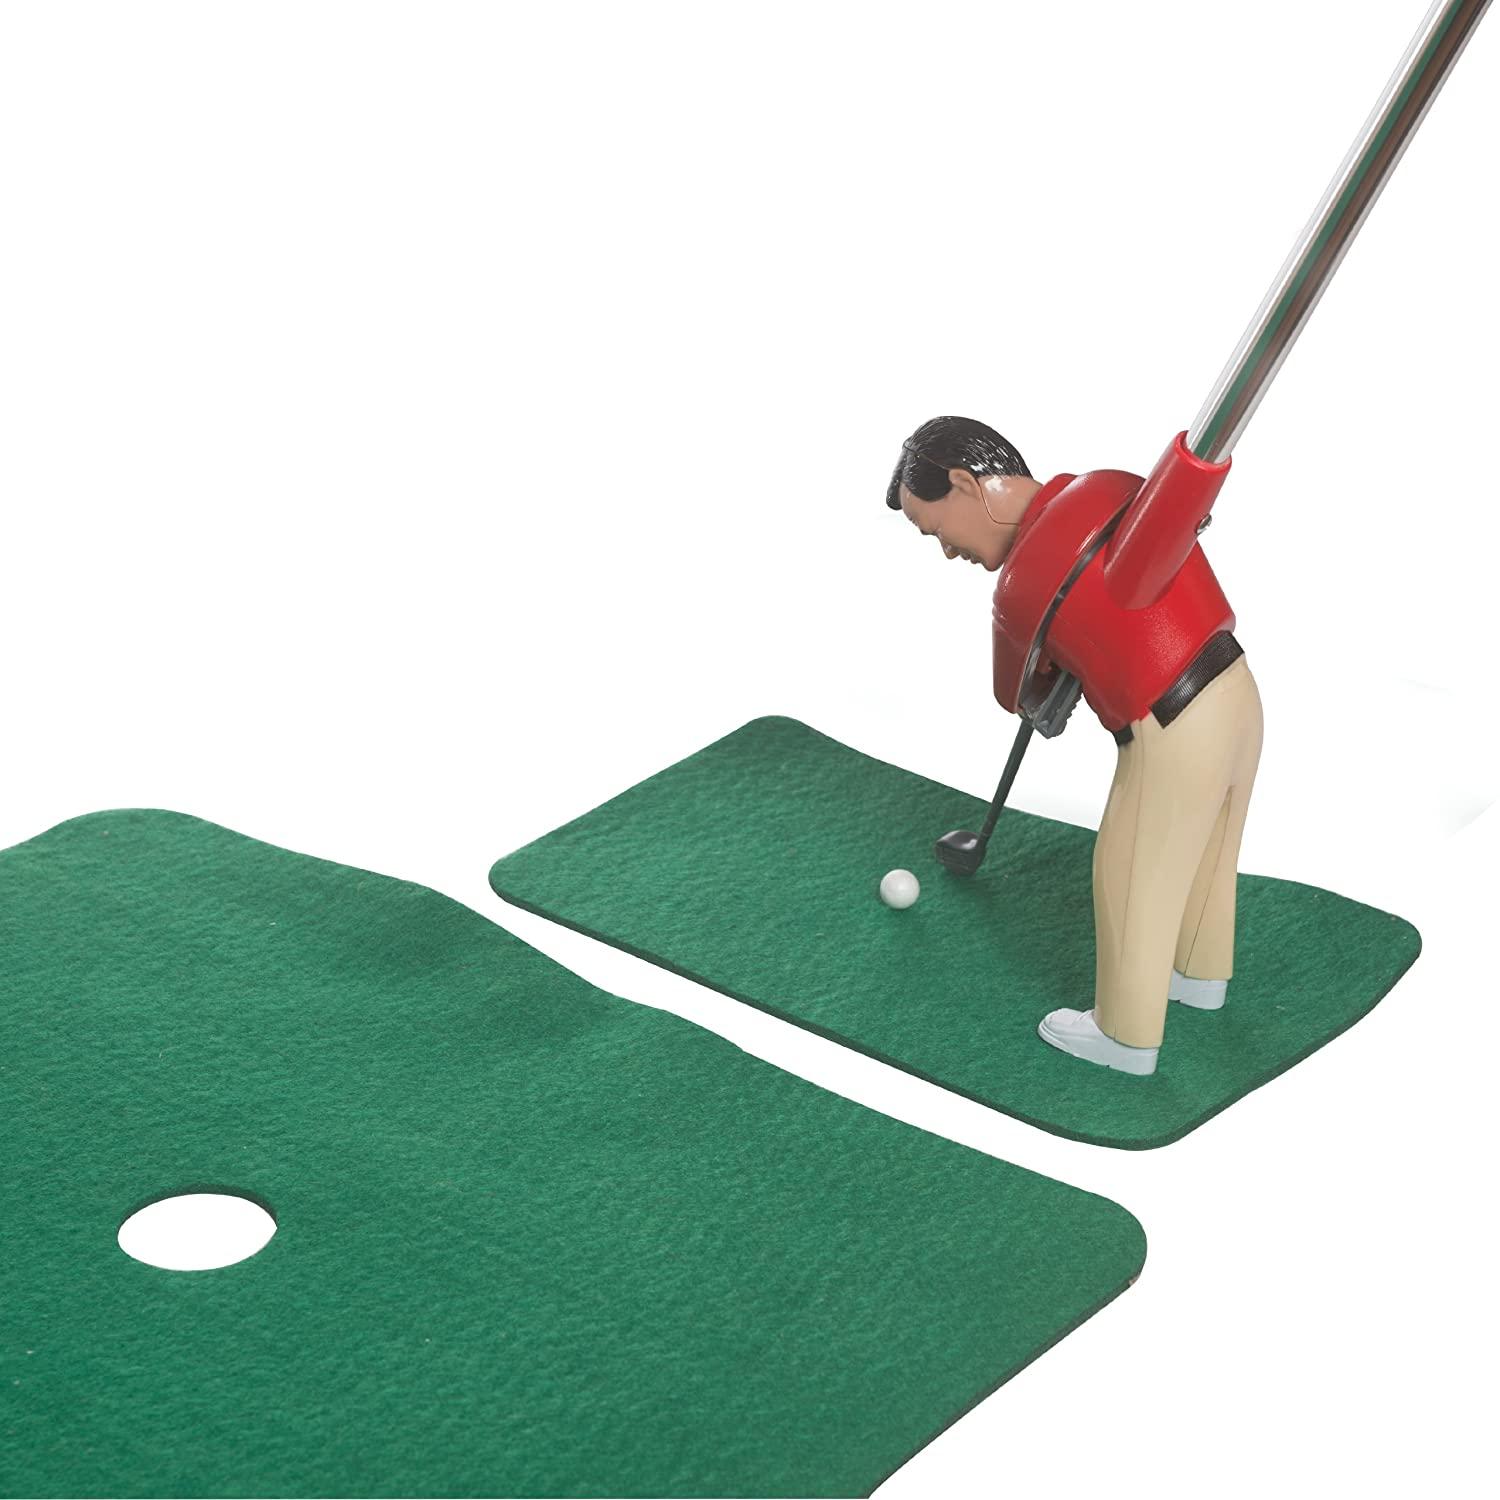 Games Room Golf Amazoncouk Toys Games